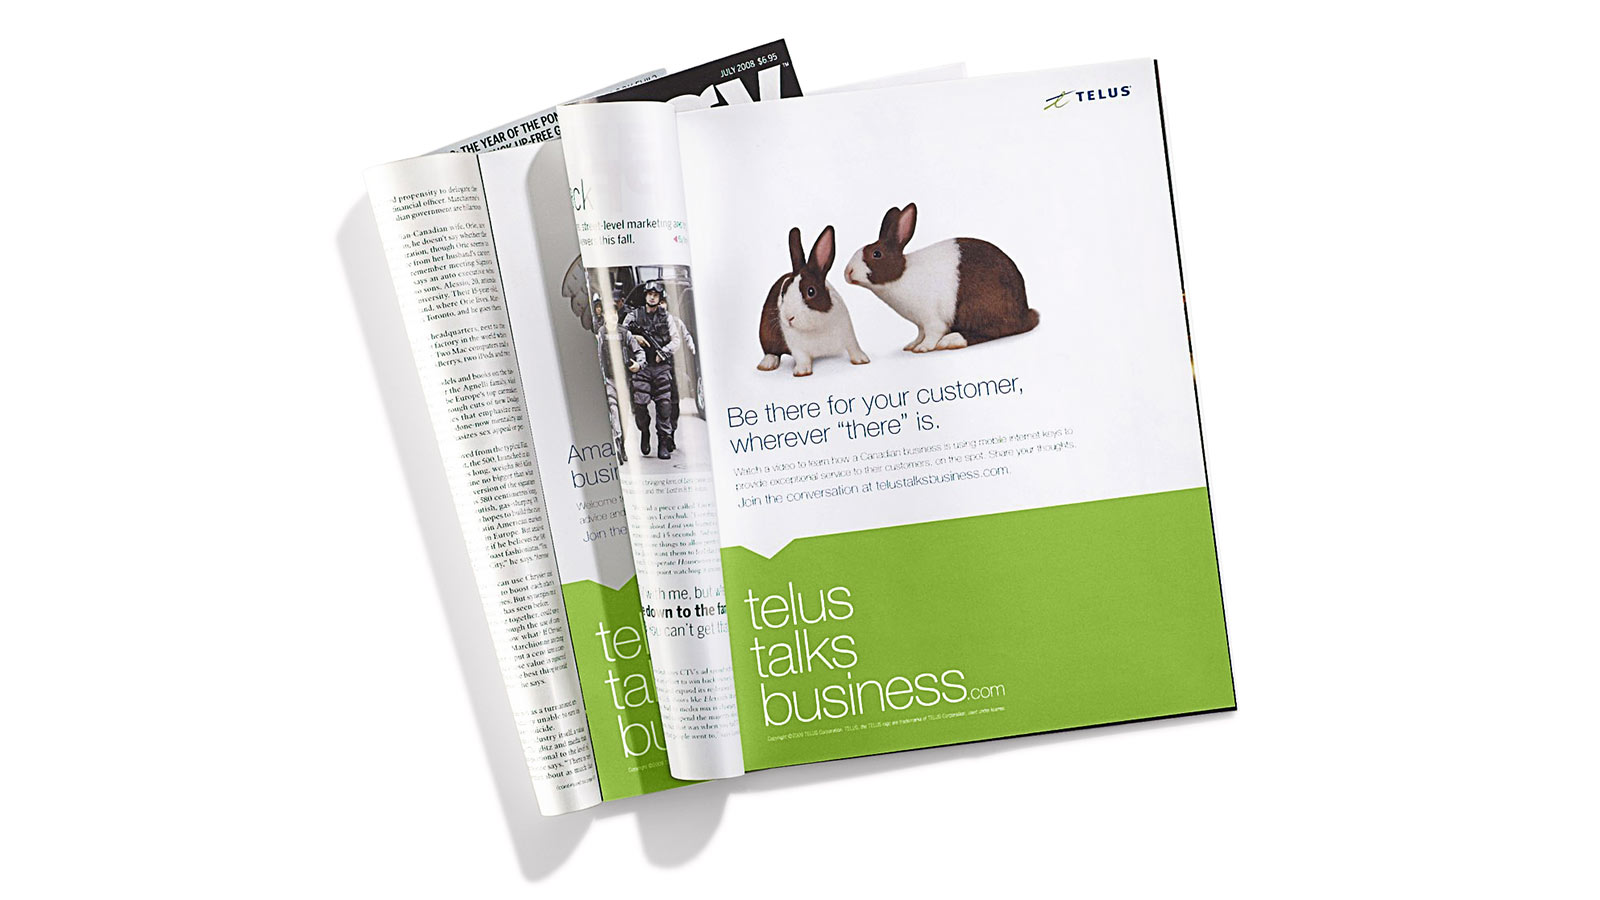 TELUS | TELUS Talks Business Campaign | App Development, Content Strategy & Marketing, CRM (Customer Relationship Marketing), Digital Innovation, Digital Marketing, Email Marketing, Responsive Design, Strategy